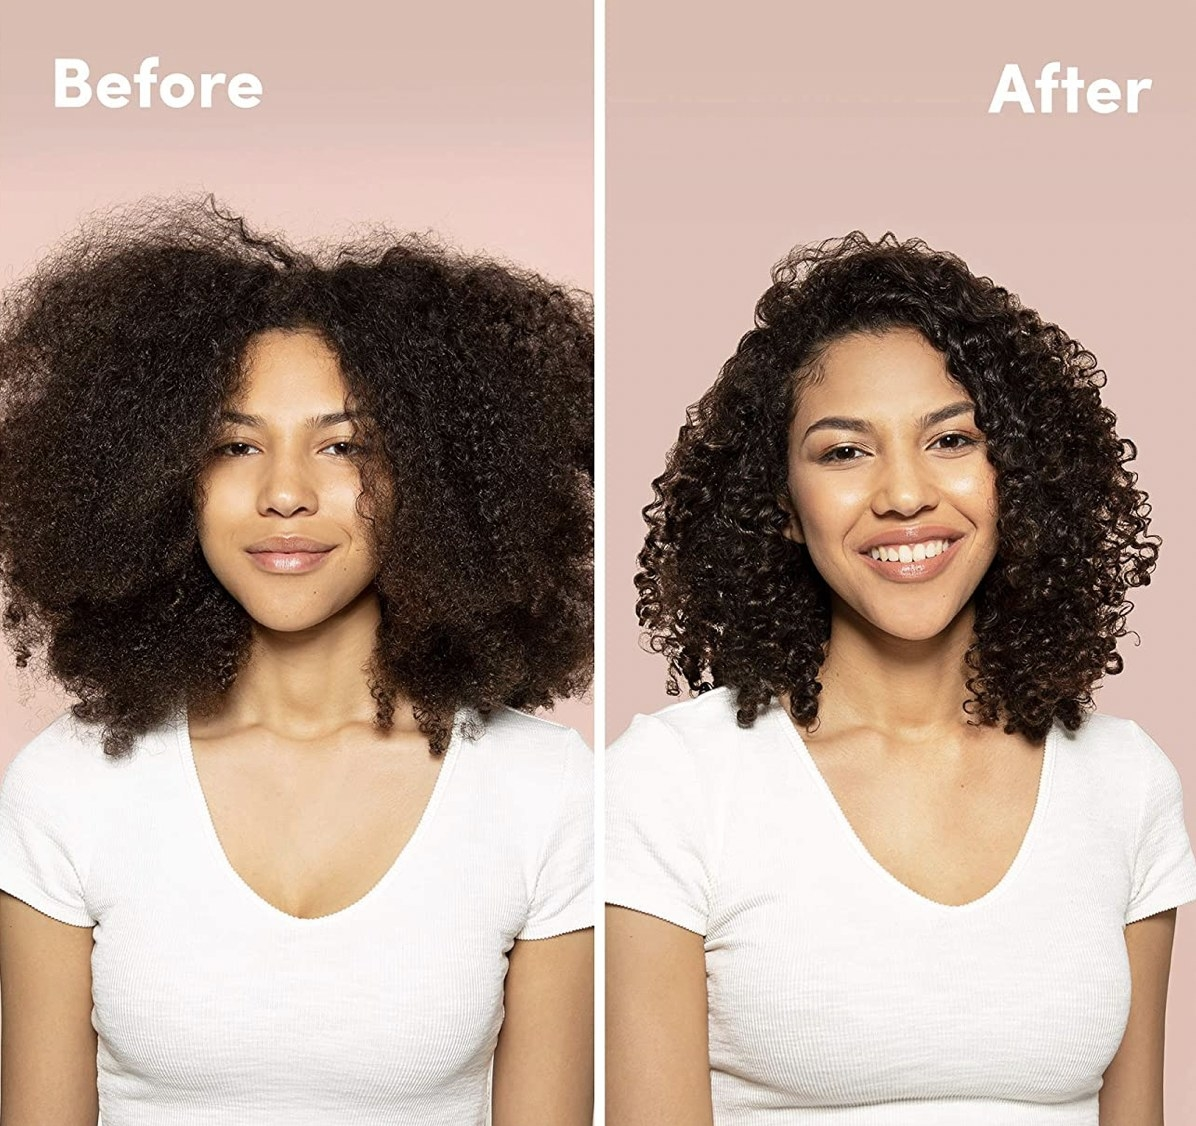 A woman showing before and after images of her curly hair